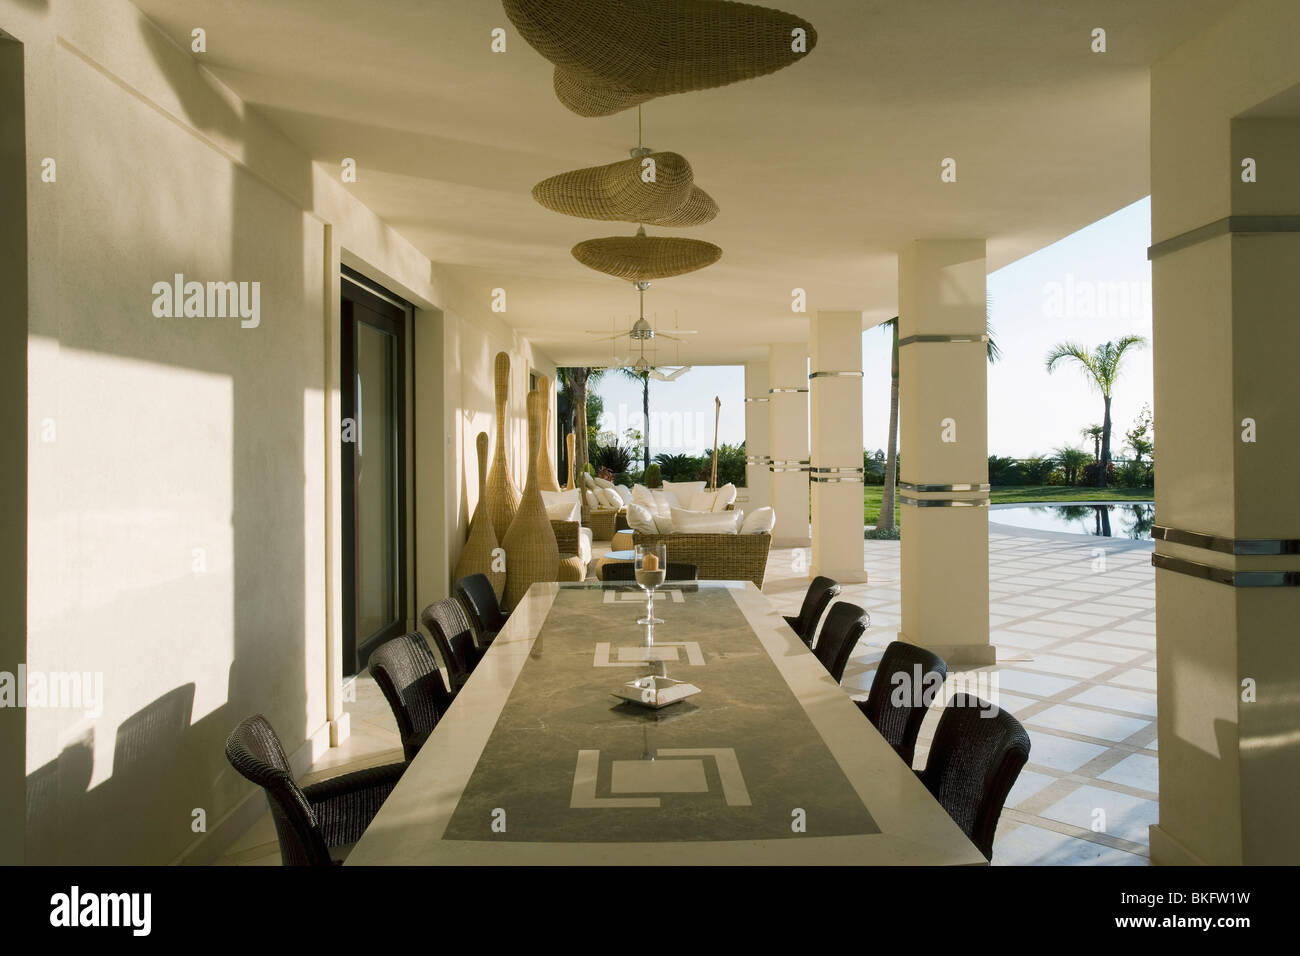 Long Marble Table In Dining And Living Area On Veranda Of Large Spanish  Villa With View Of Swimming Pool